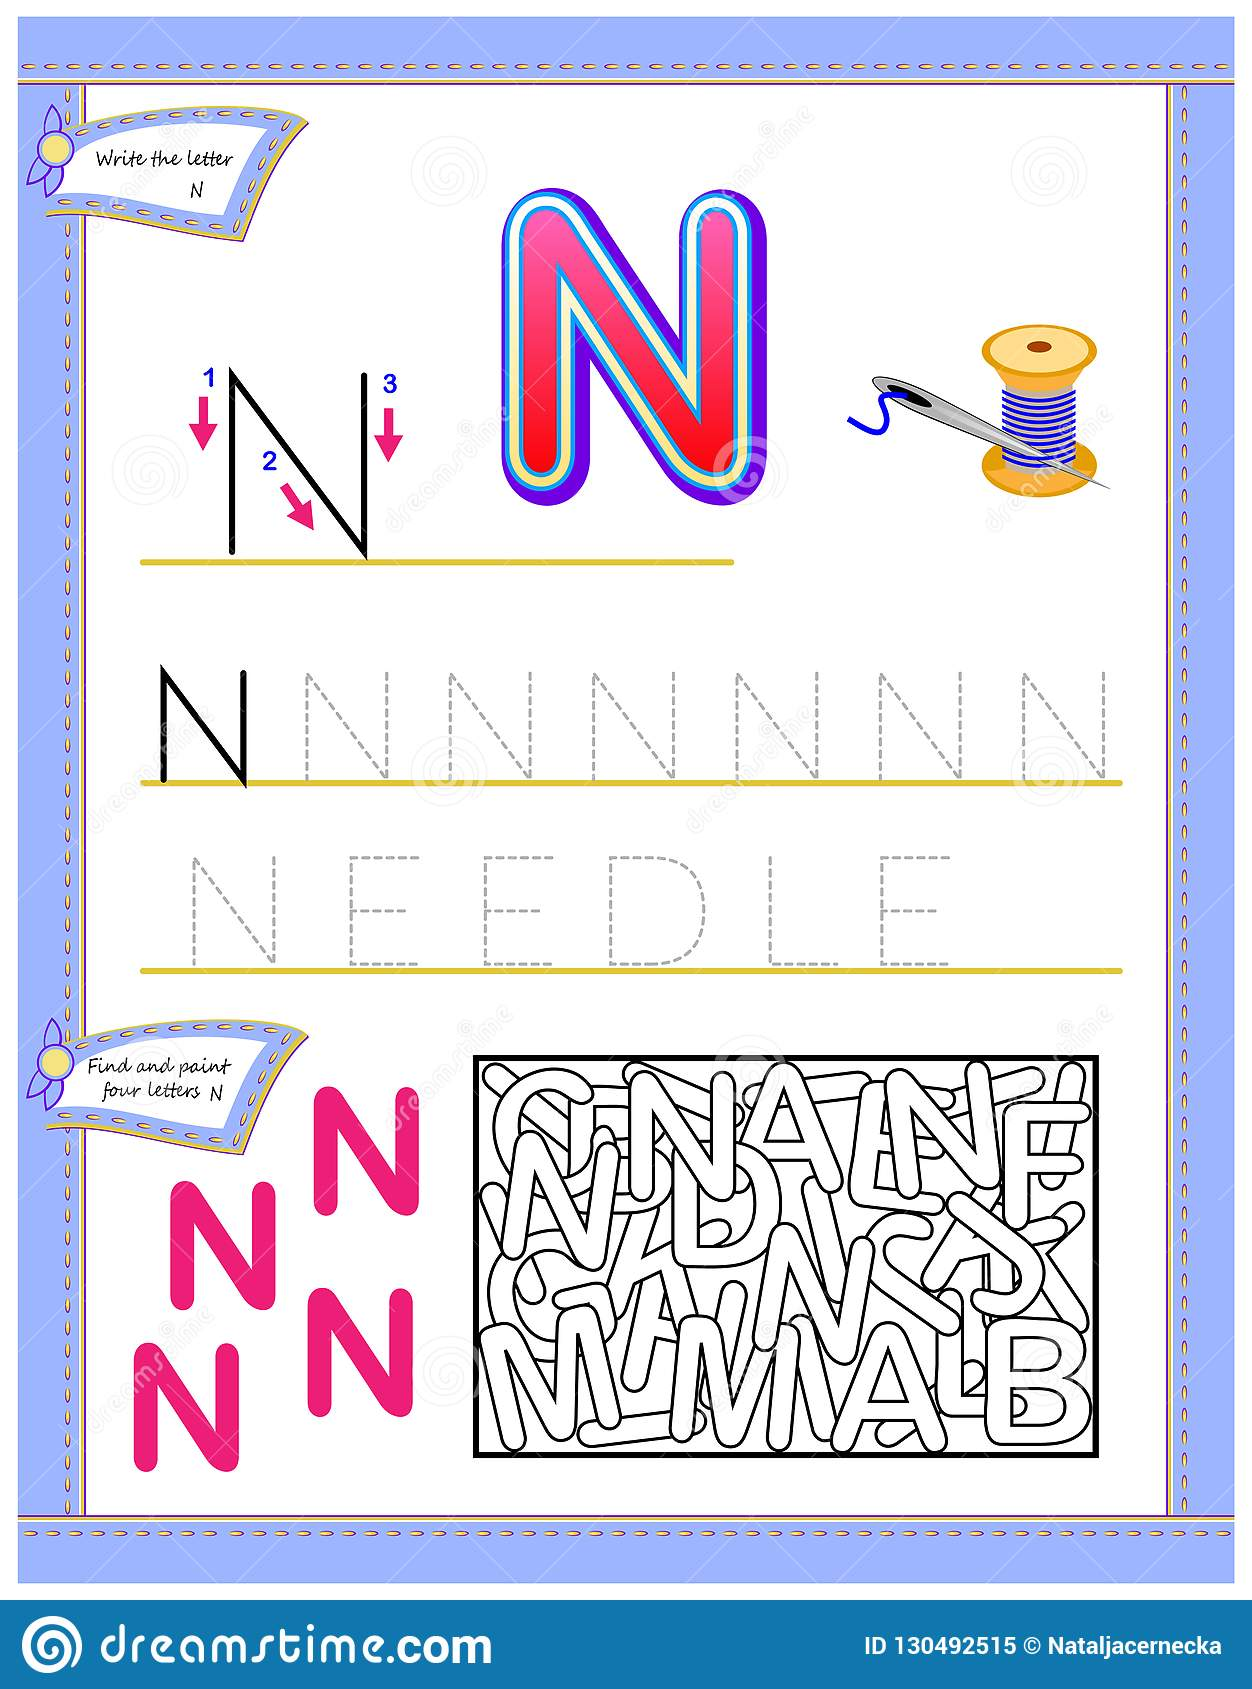 Worksheet For Kids With Letter N For Study English